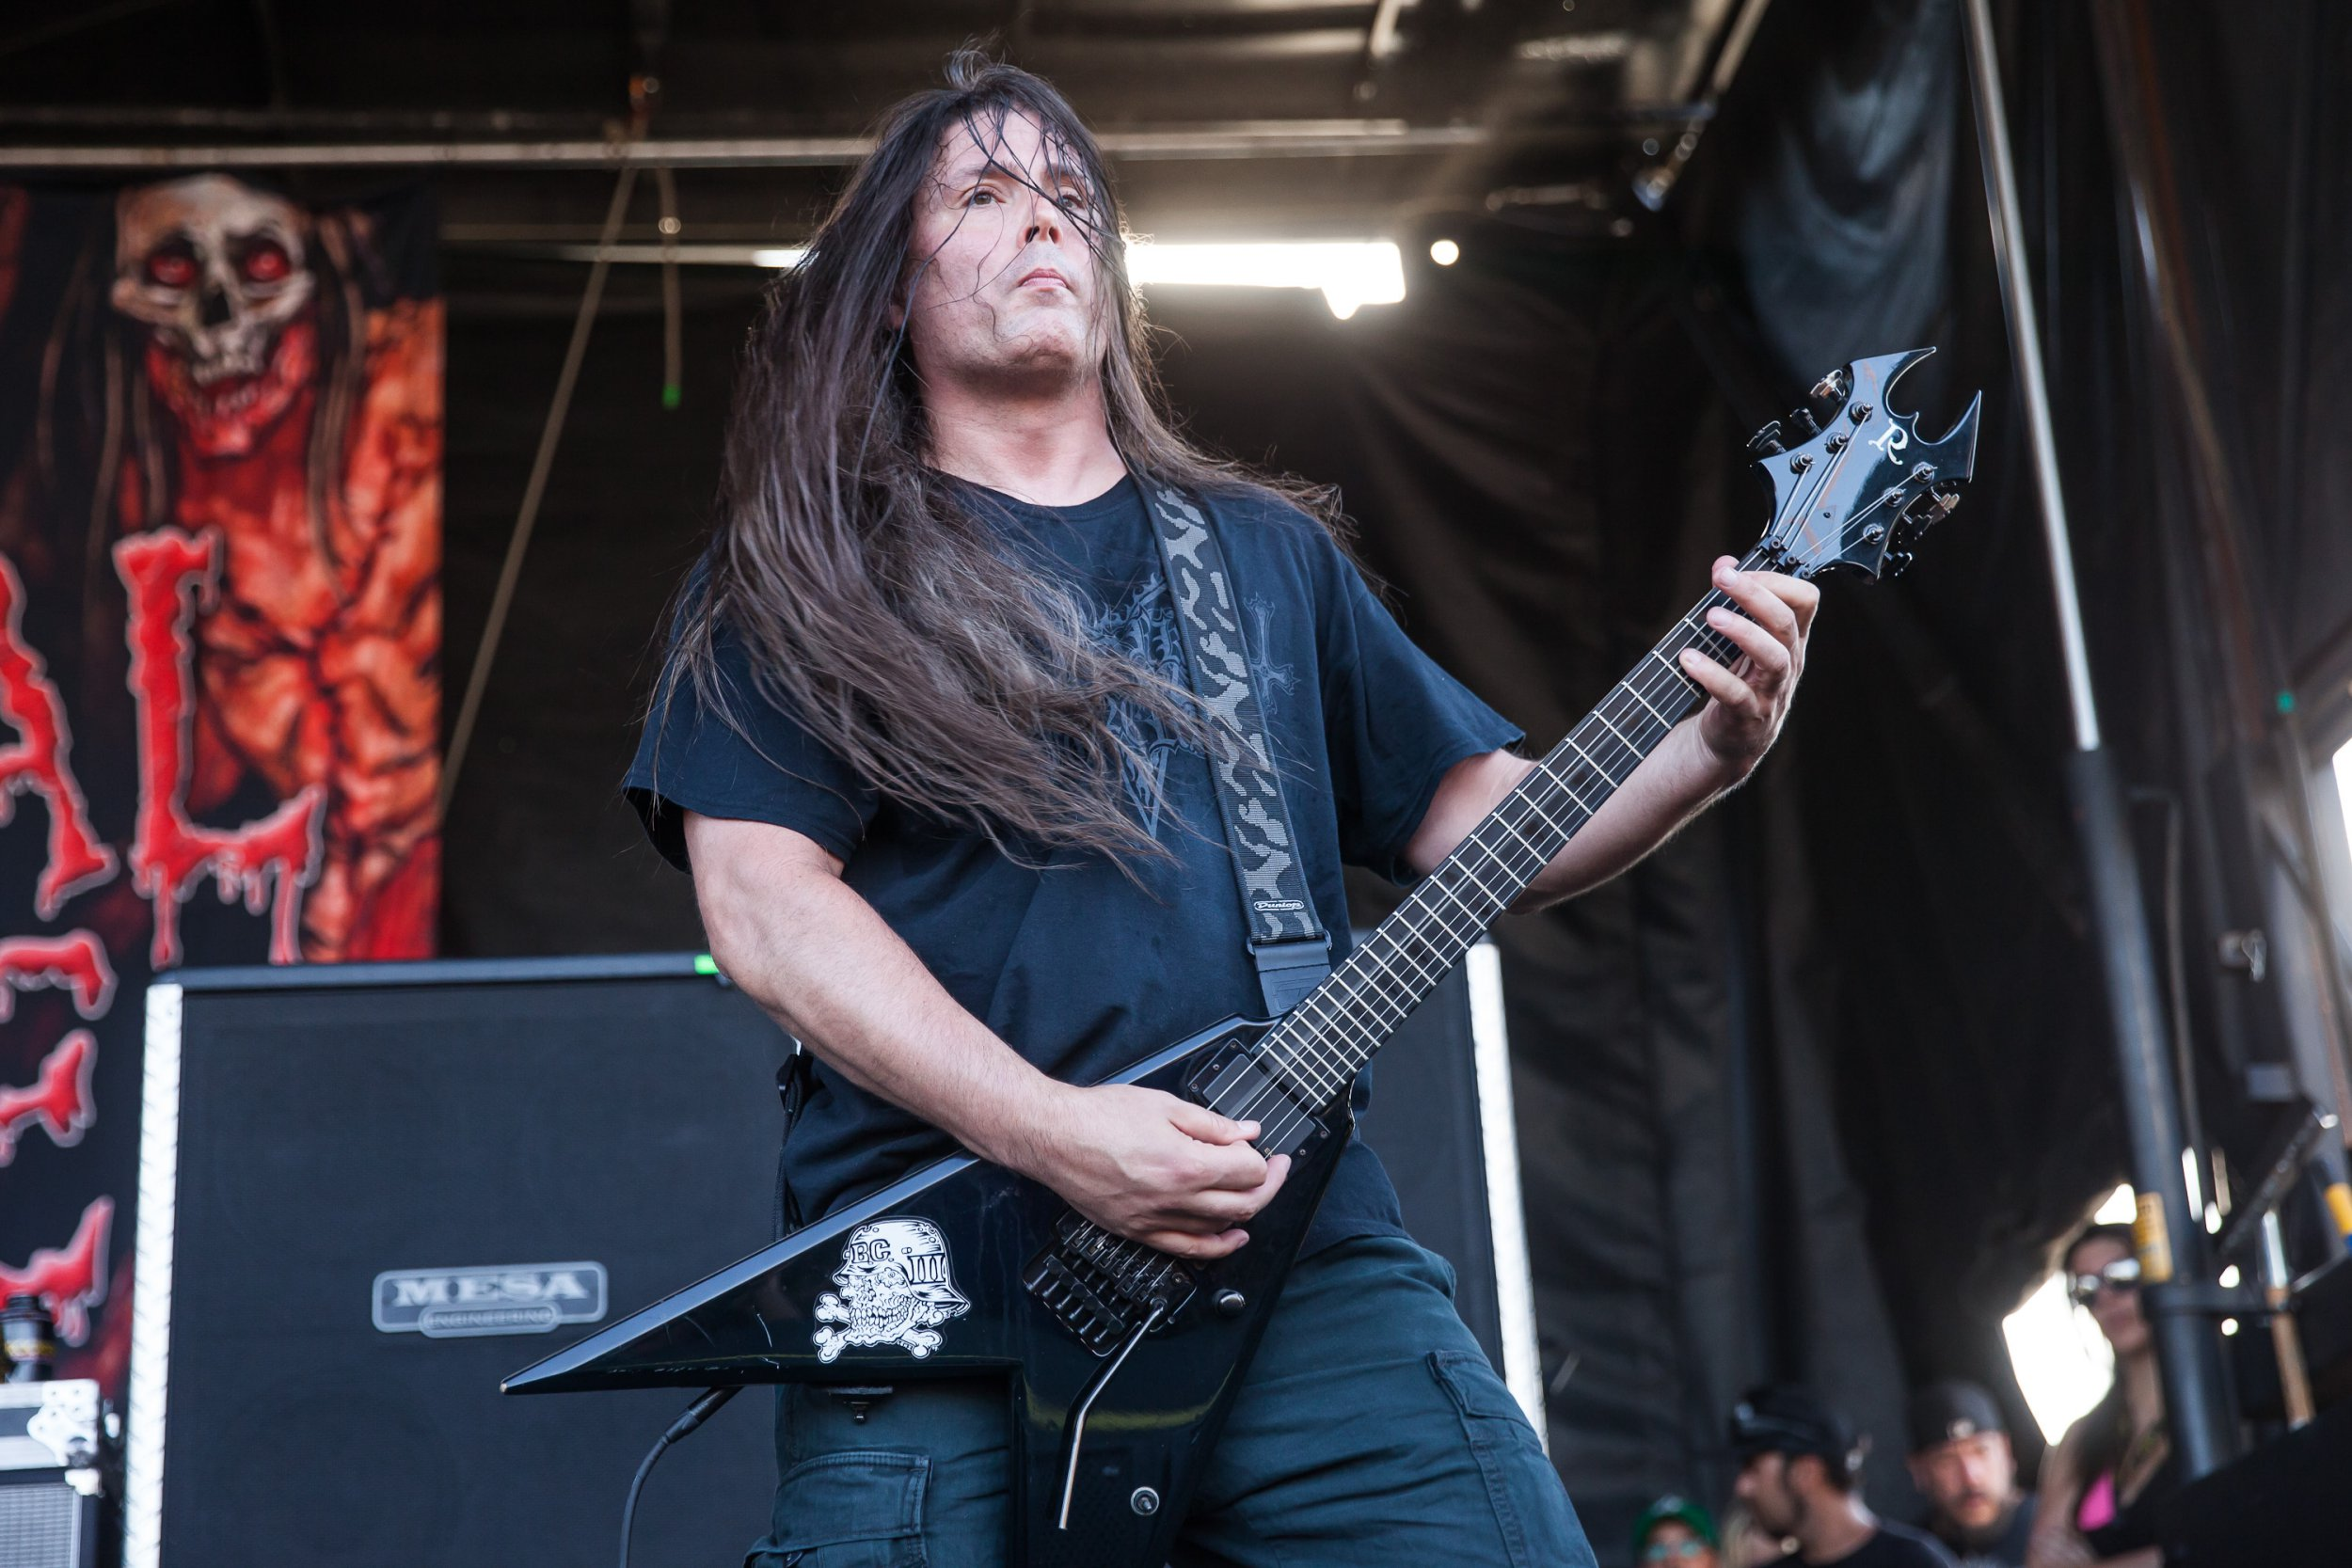 Cannibal Corpse guitarist arrested for assault after 'running towards police with a knife'